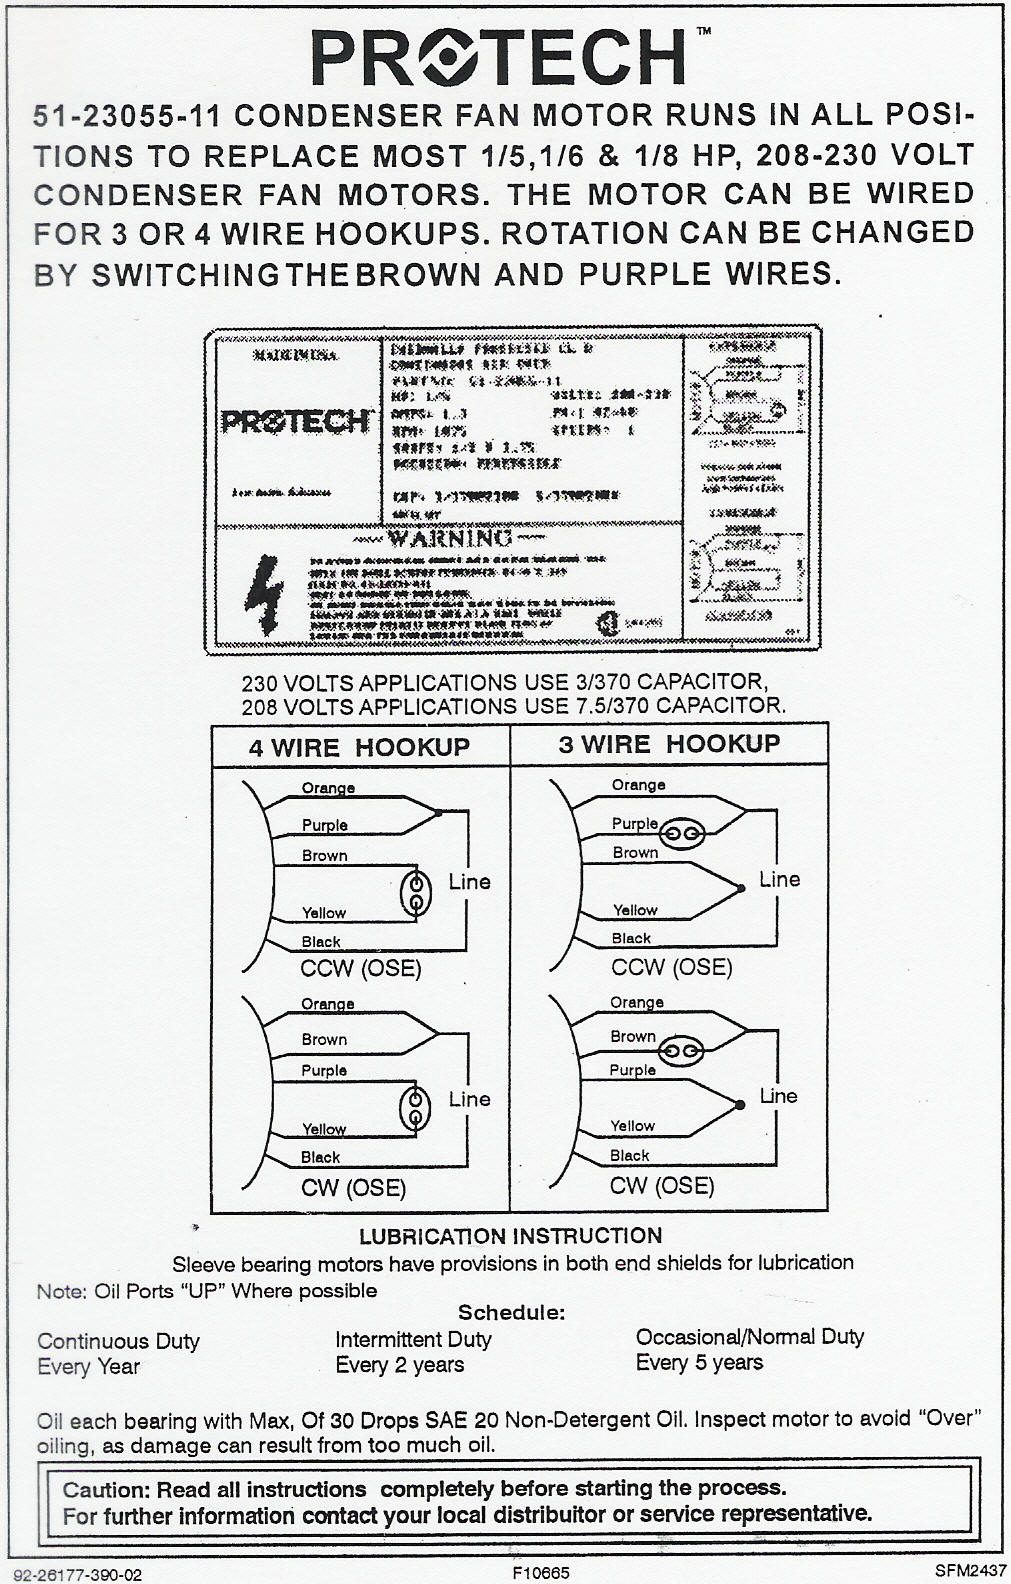 51 23055 11 wiring diagram rheem ruud condenser fan motor 51 23055 11 wiring diagram Basic Electrical Wiring Diagrams at bayanpartner.co